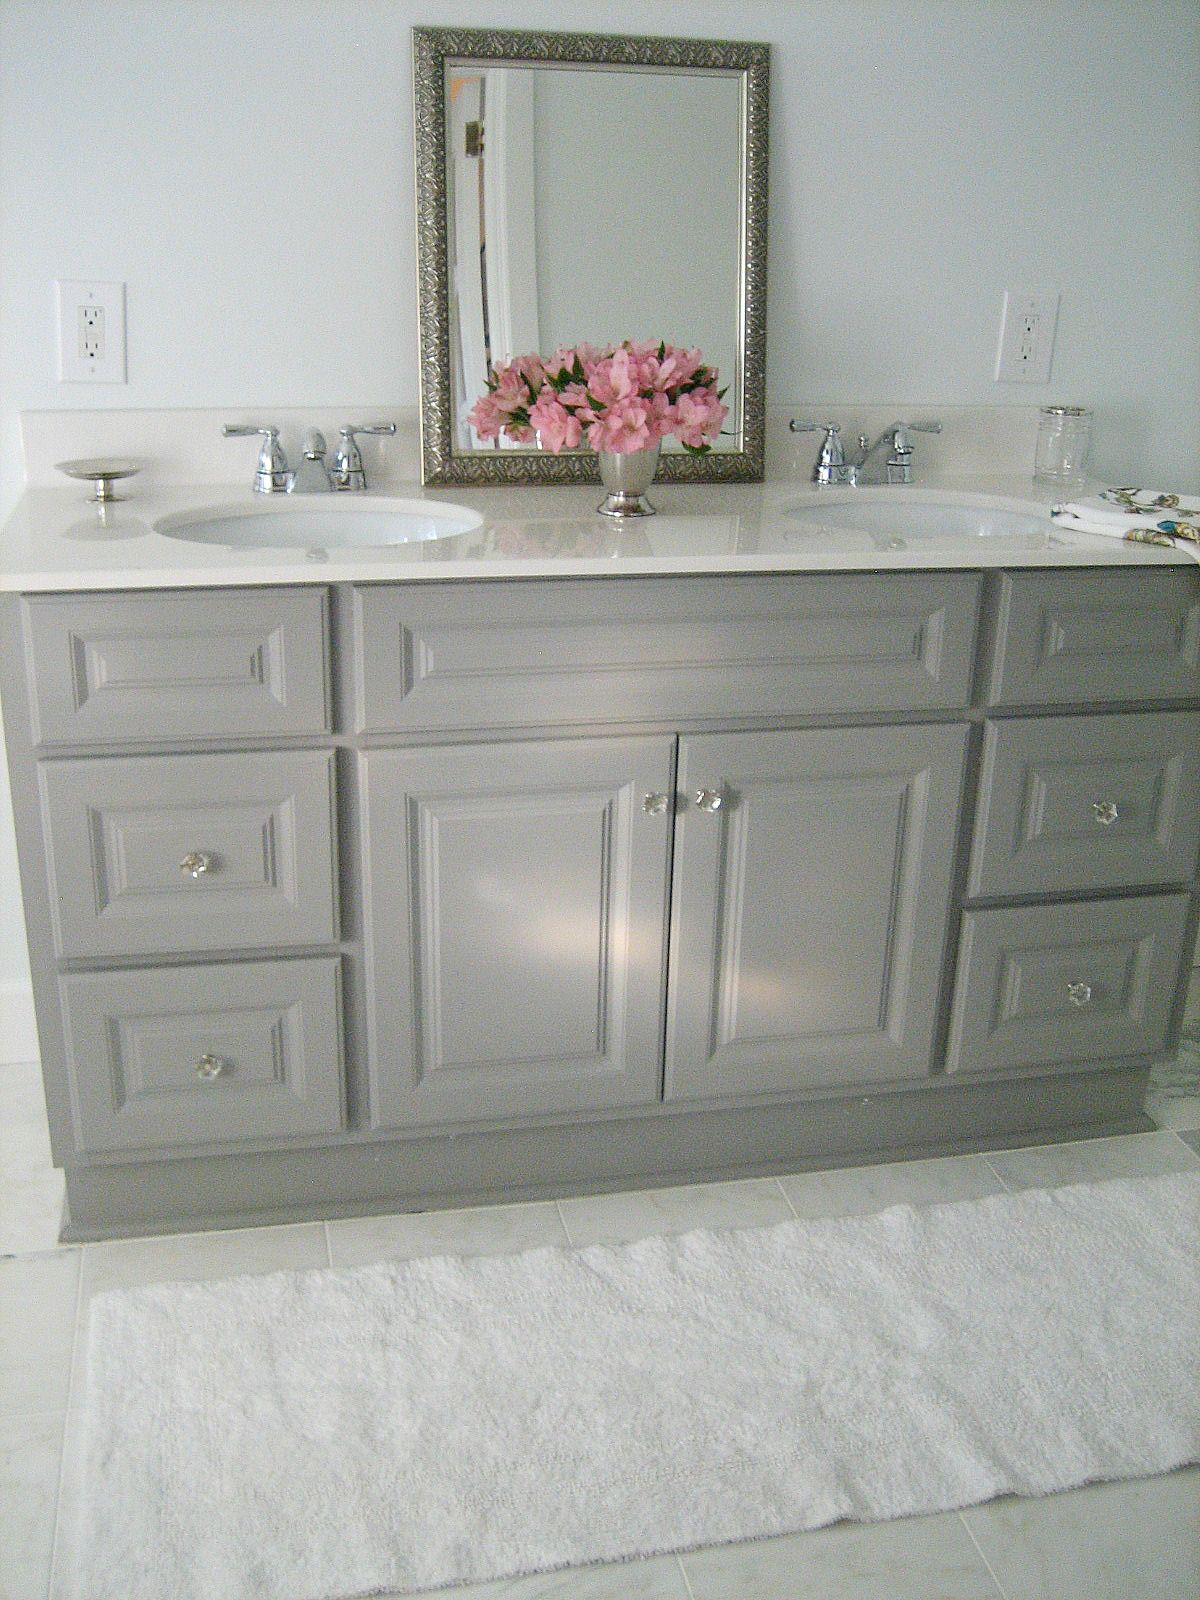 Charcoal Gray Bathroom Vanity I Really Like This Color Maybe This Is What I Have Been Looking